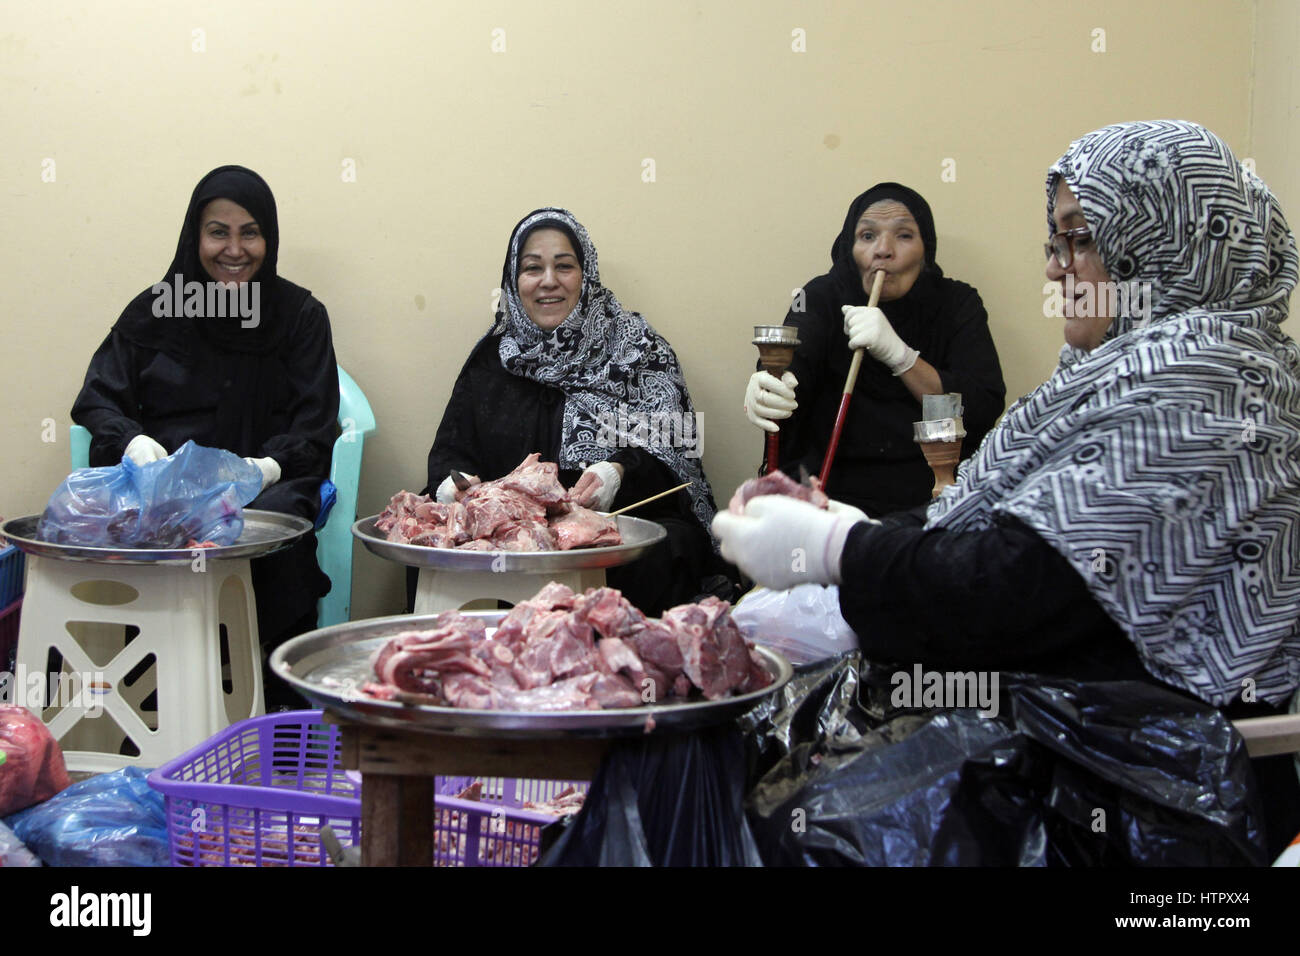 Members of Bahrain's Shia community preparing food for a communal meal. - Stock Image